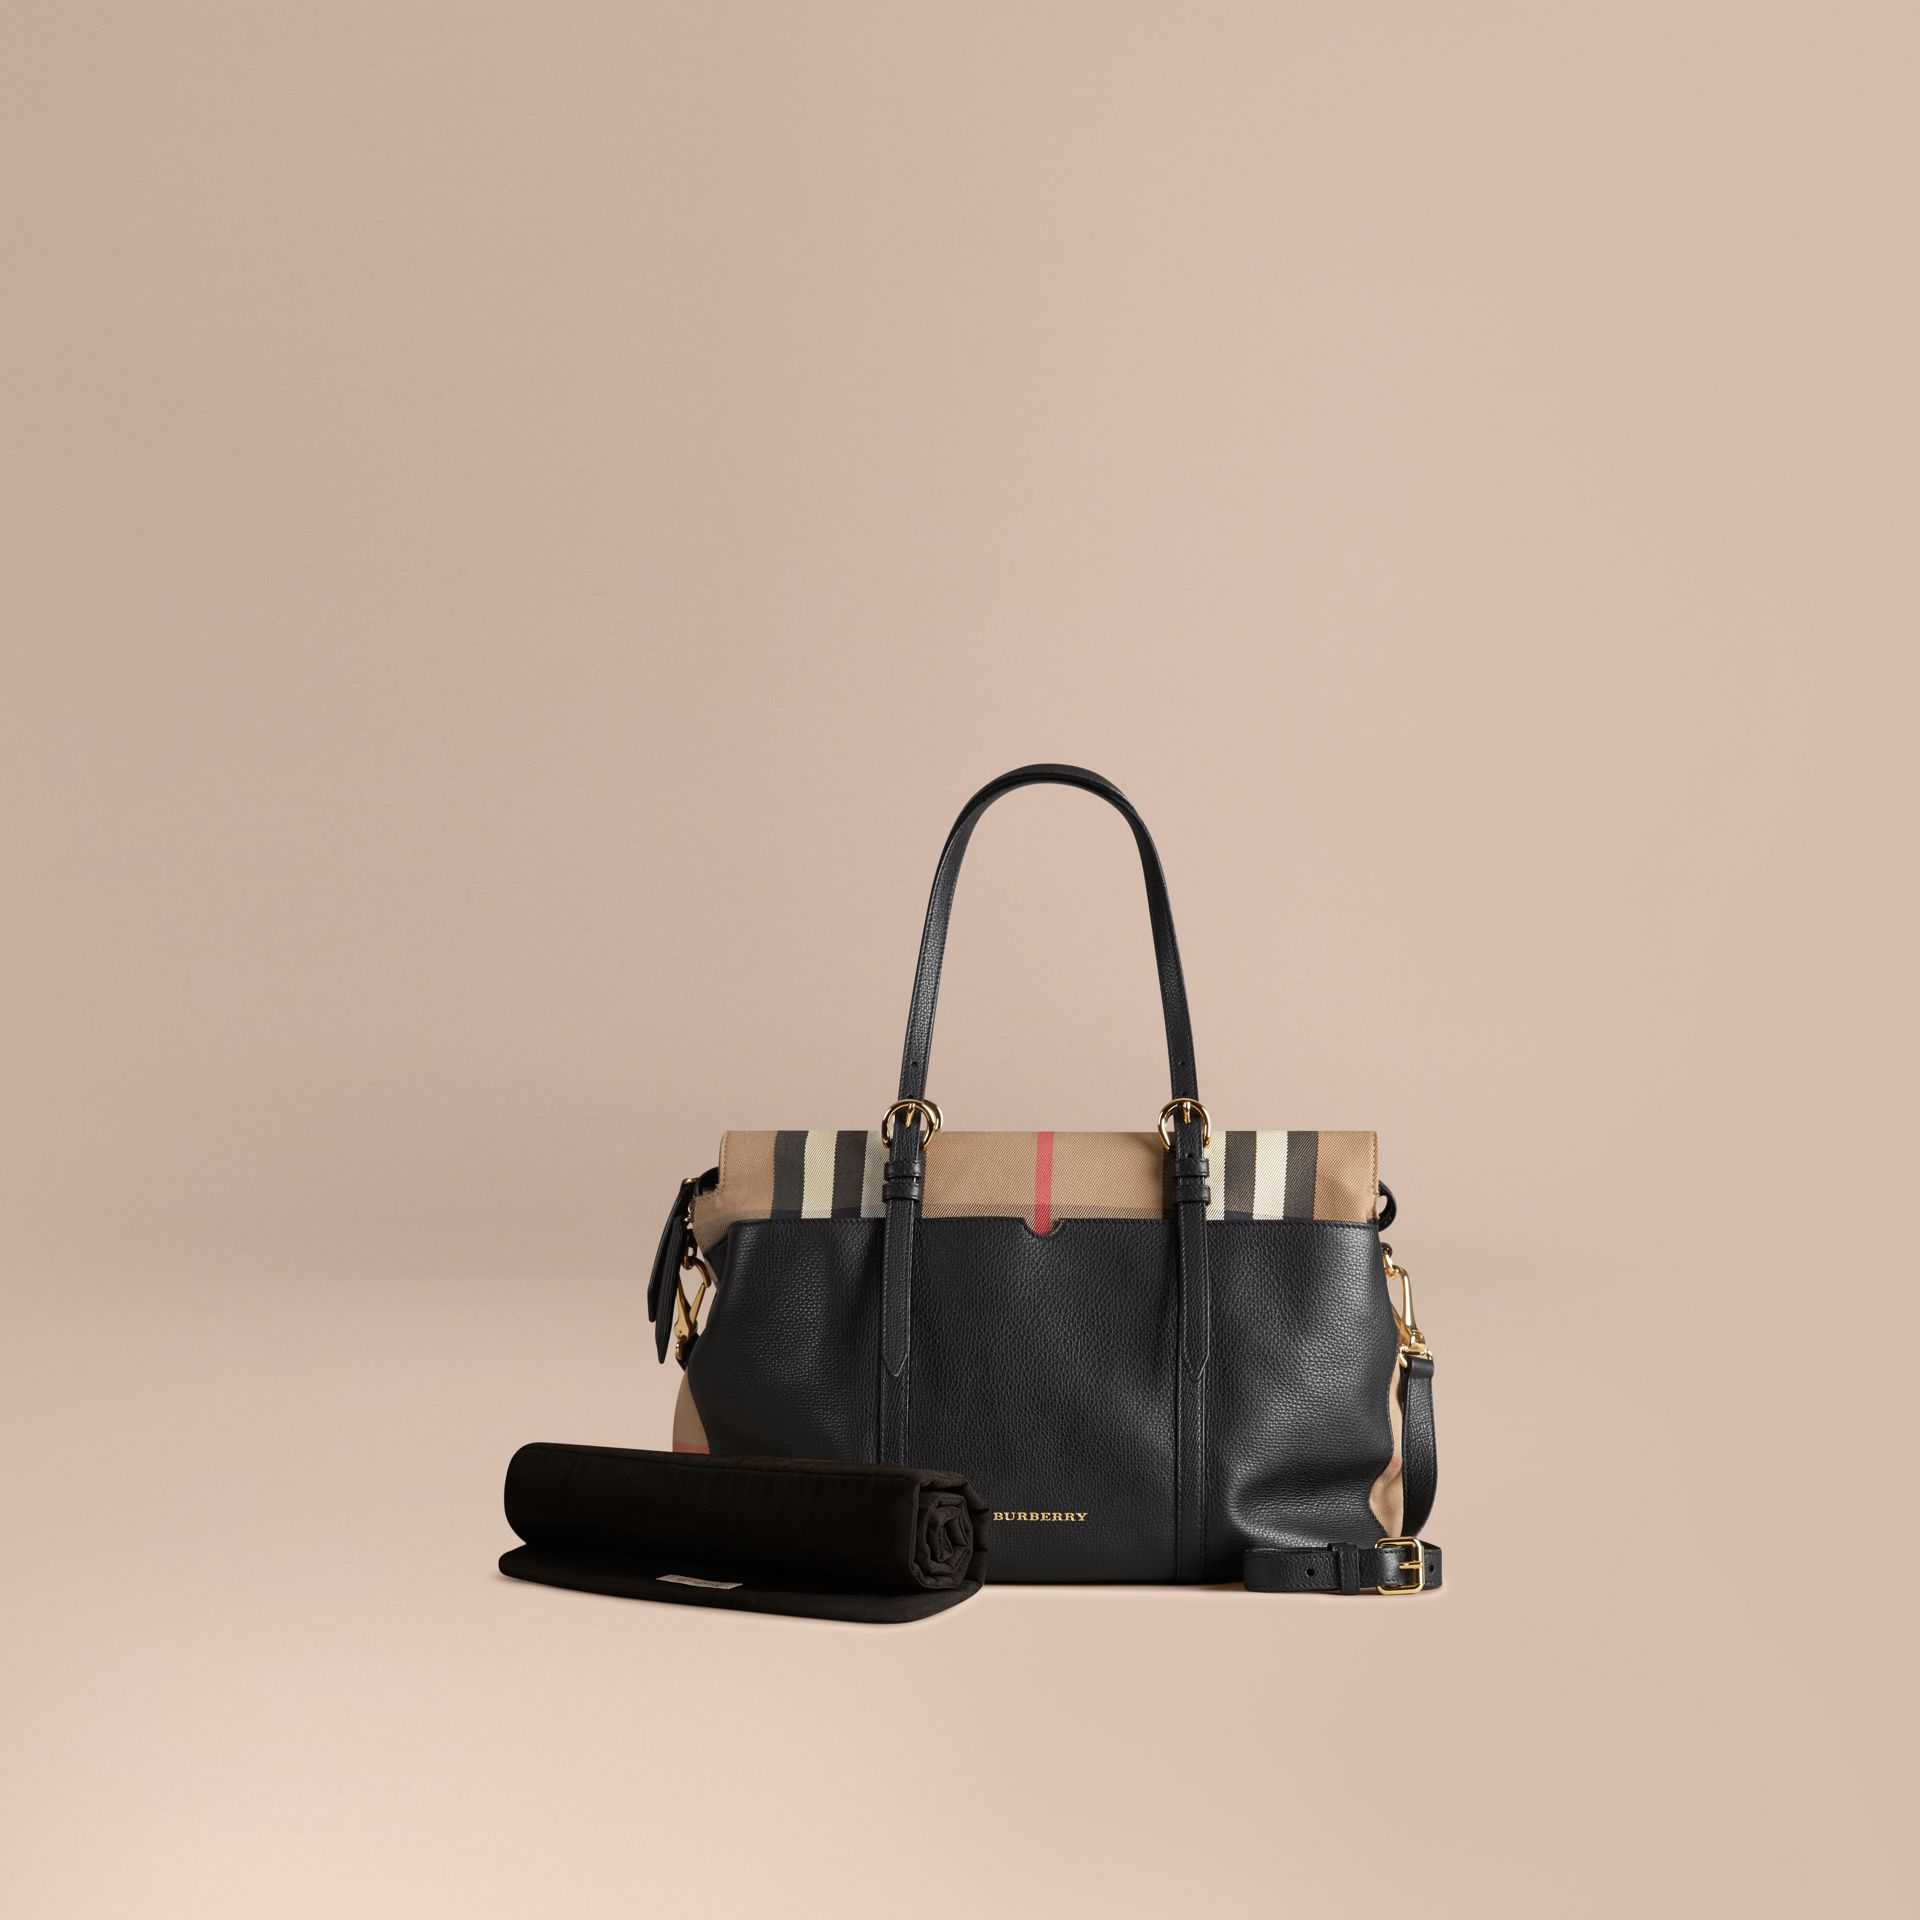 House Check and Leather Baby Changing Bag in Black - gallery image 1